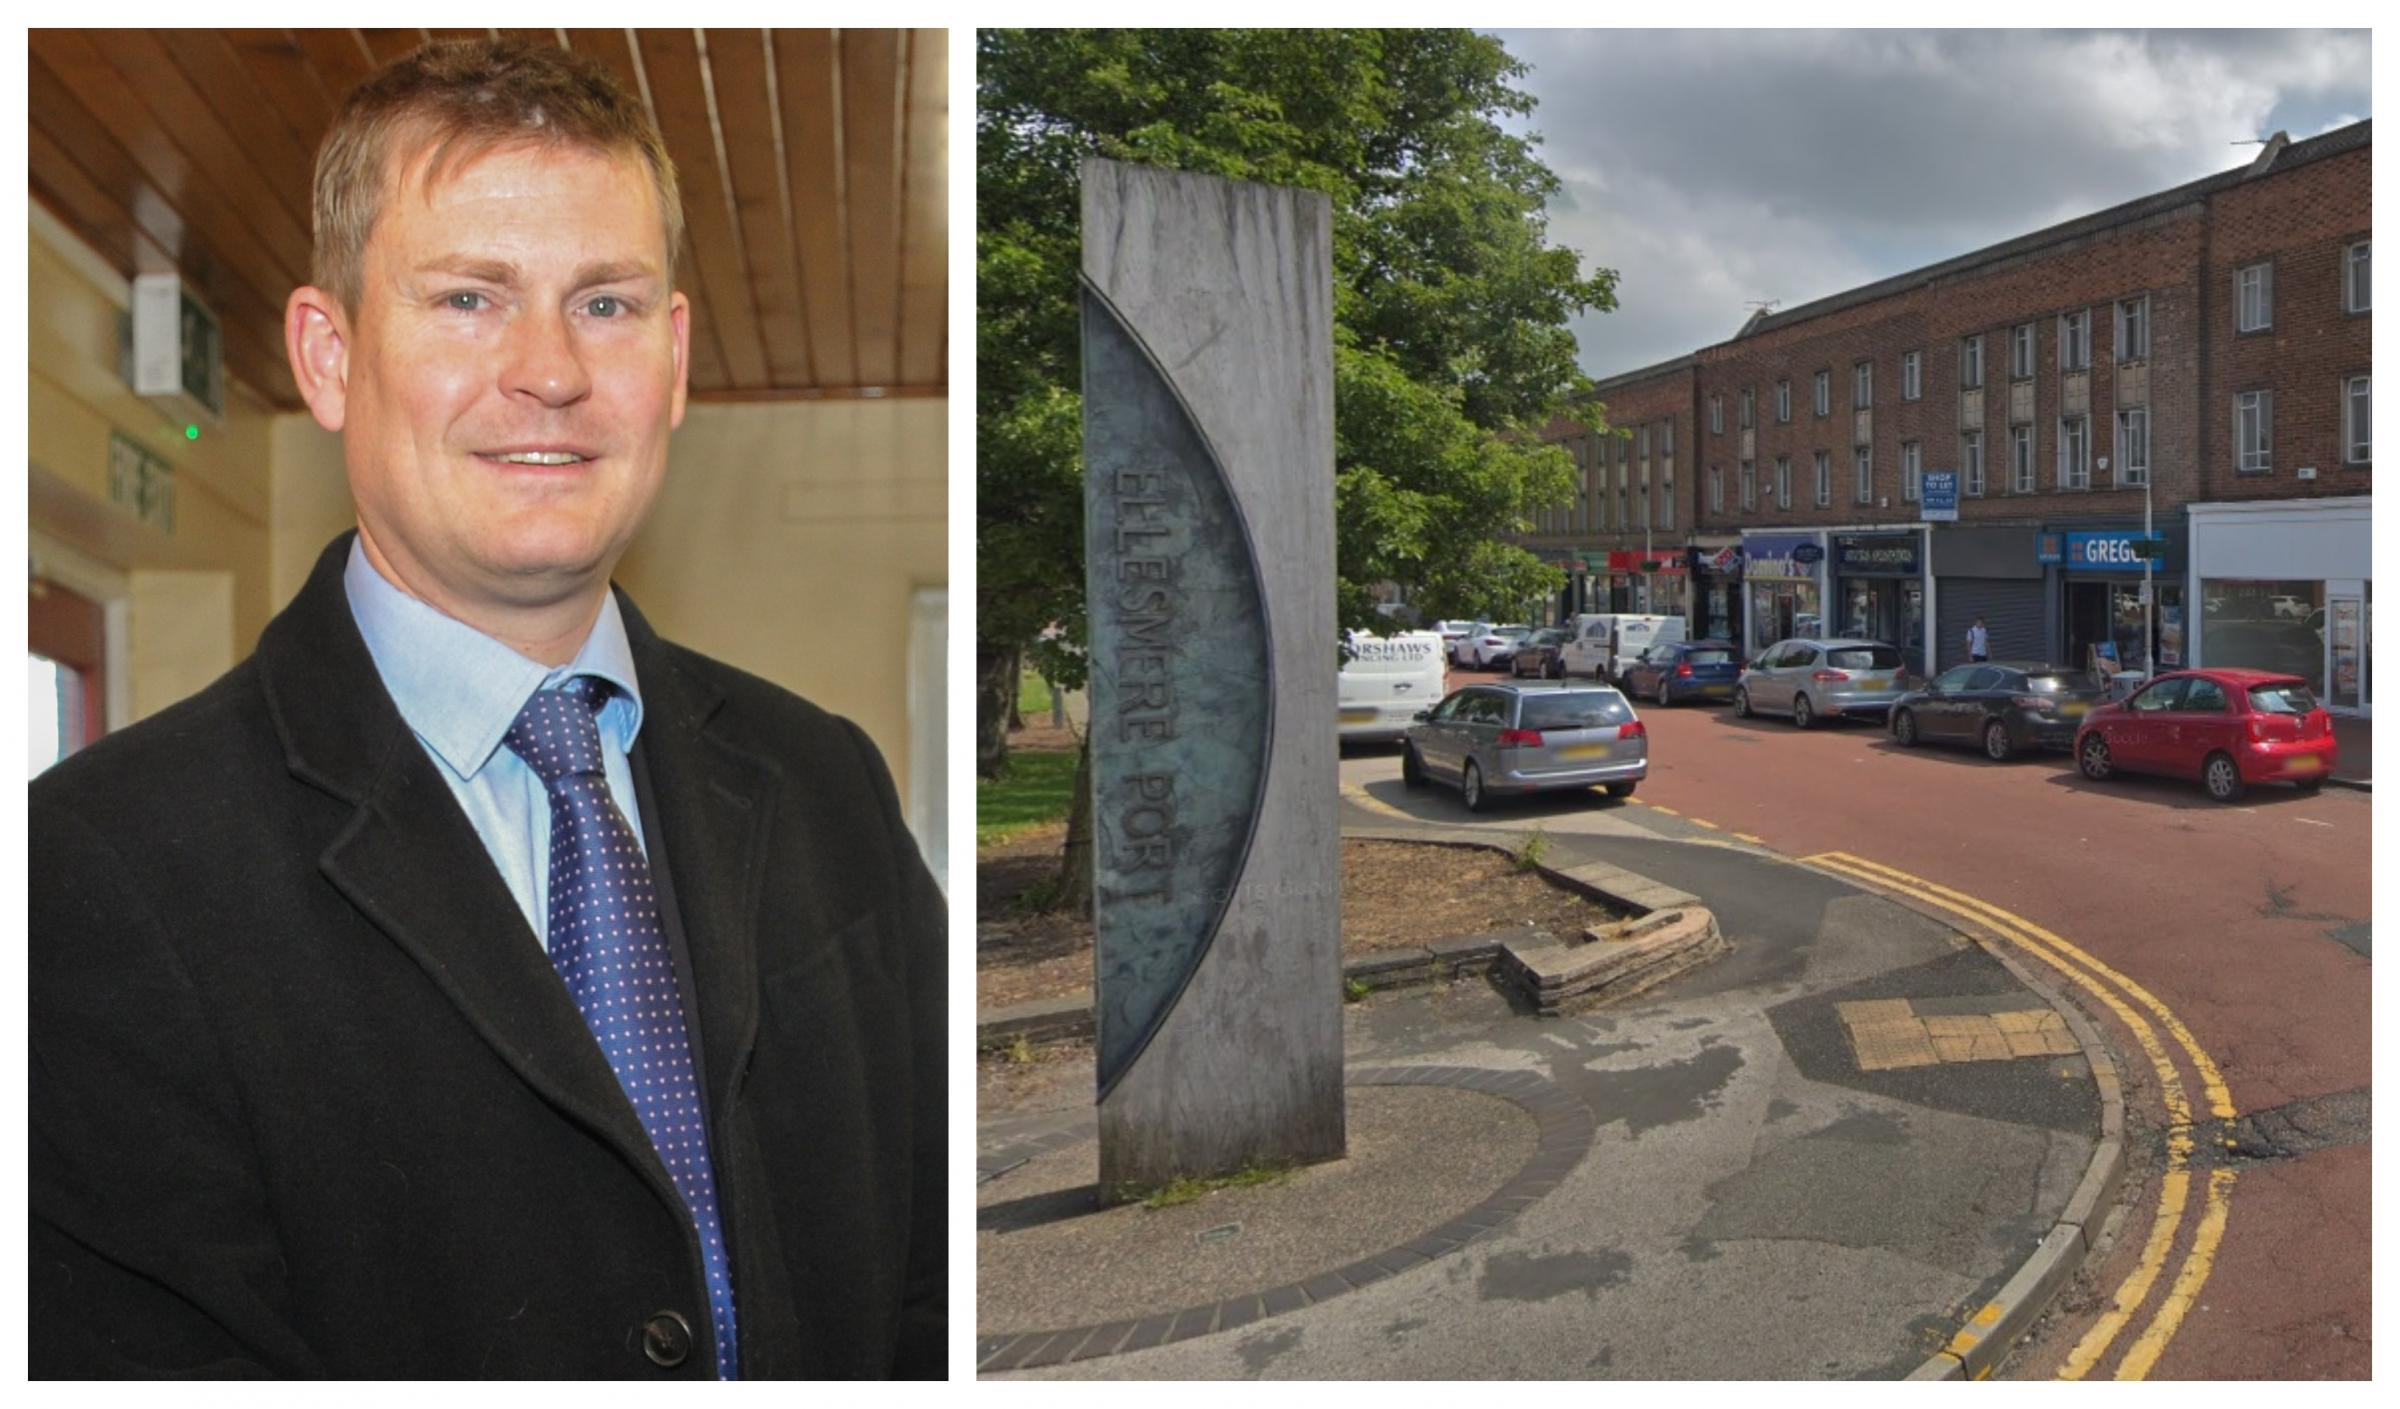 Ellesmere Port and Neston MP says town has been 'left on scrapheap again' after missing out on Government fund